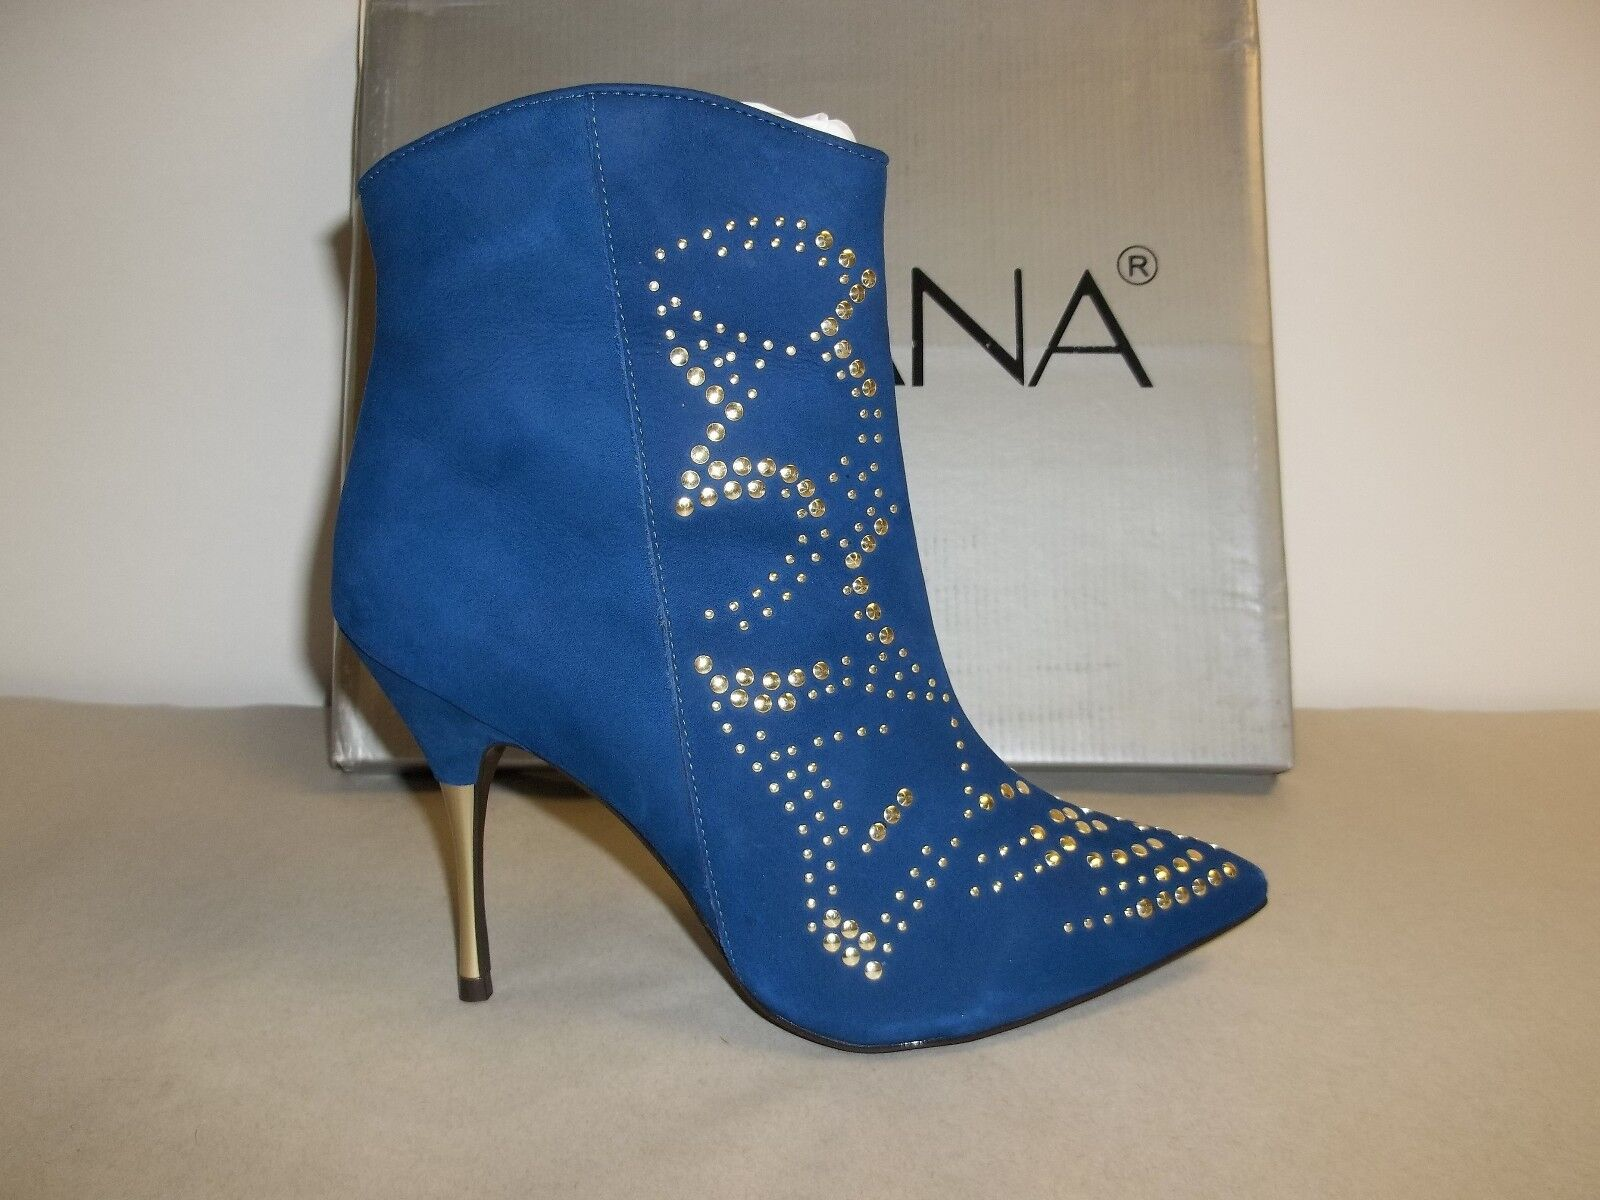 Amiana Size 6 M 12-102004-430 Blue Leather Heels Ankle Boots New Womens Shoes